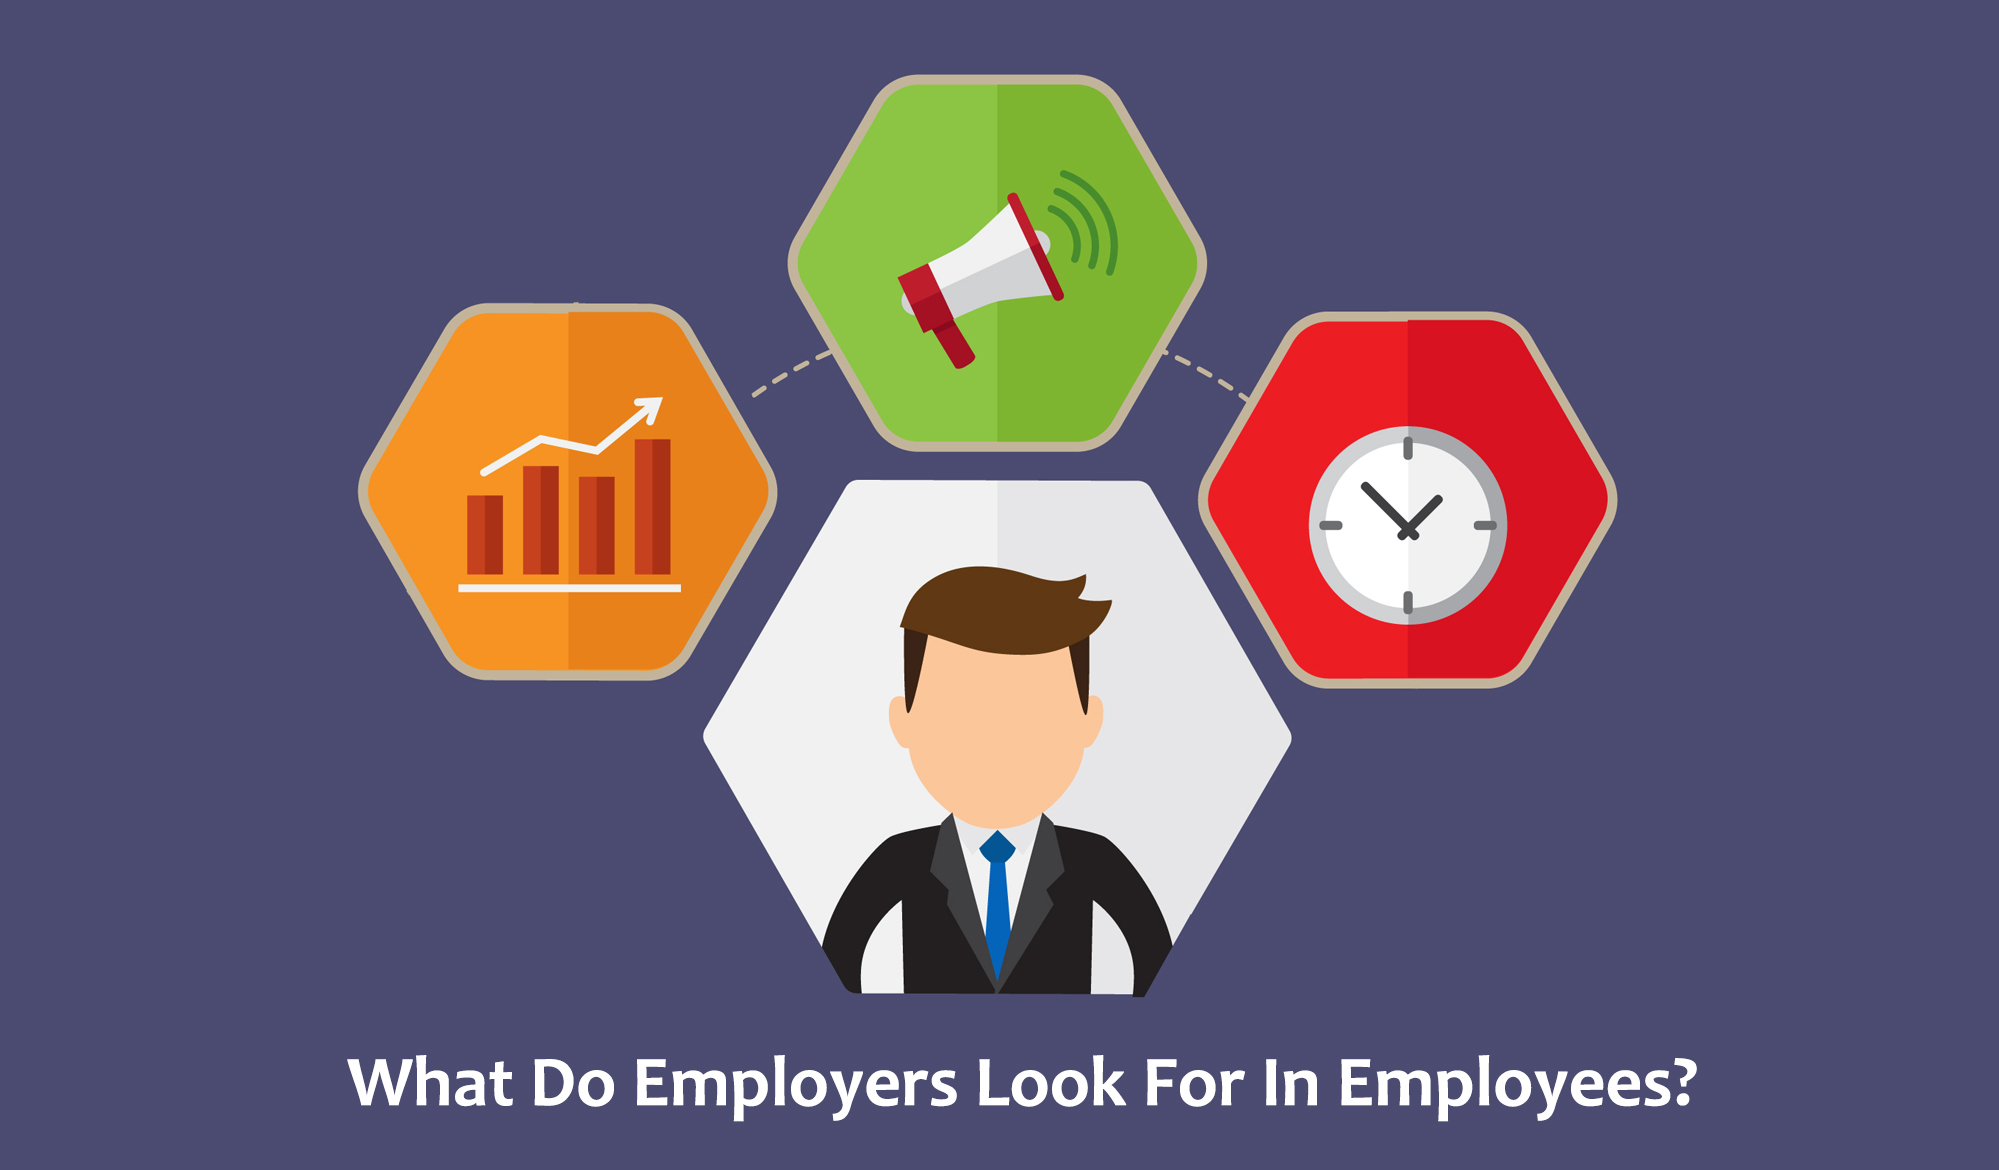 What Do Employers Look For In Employees?